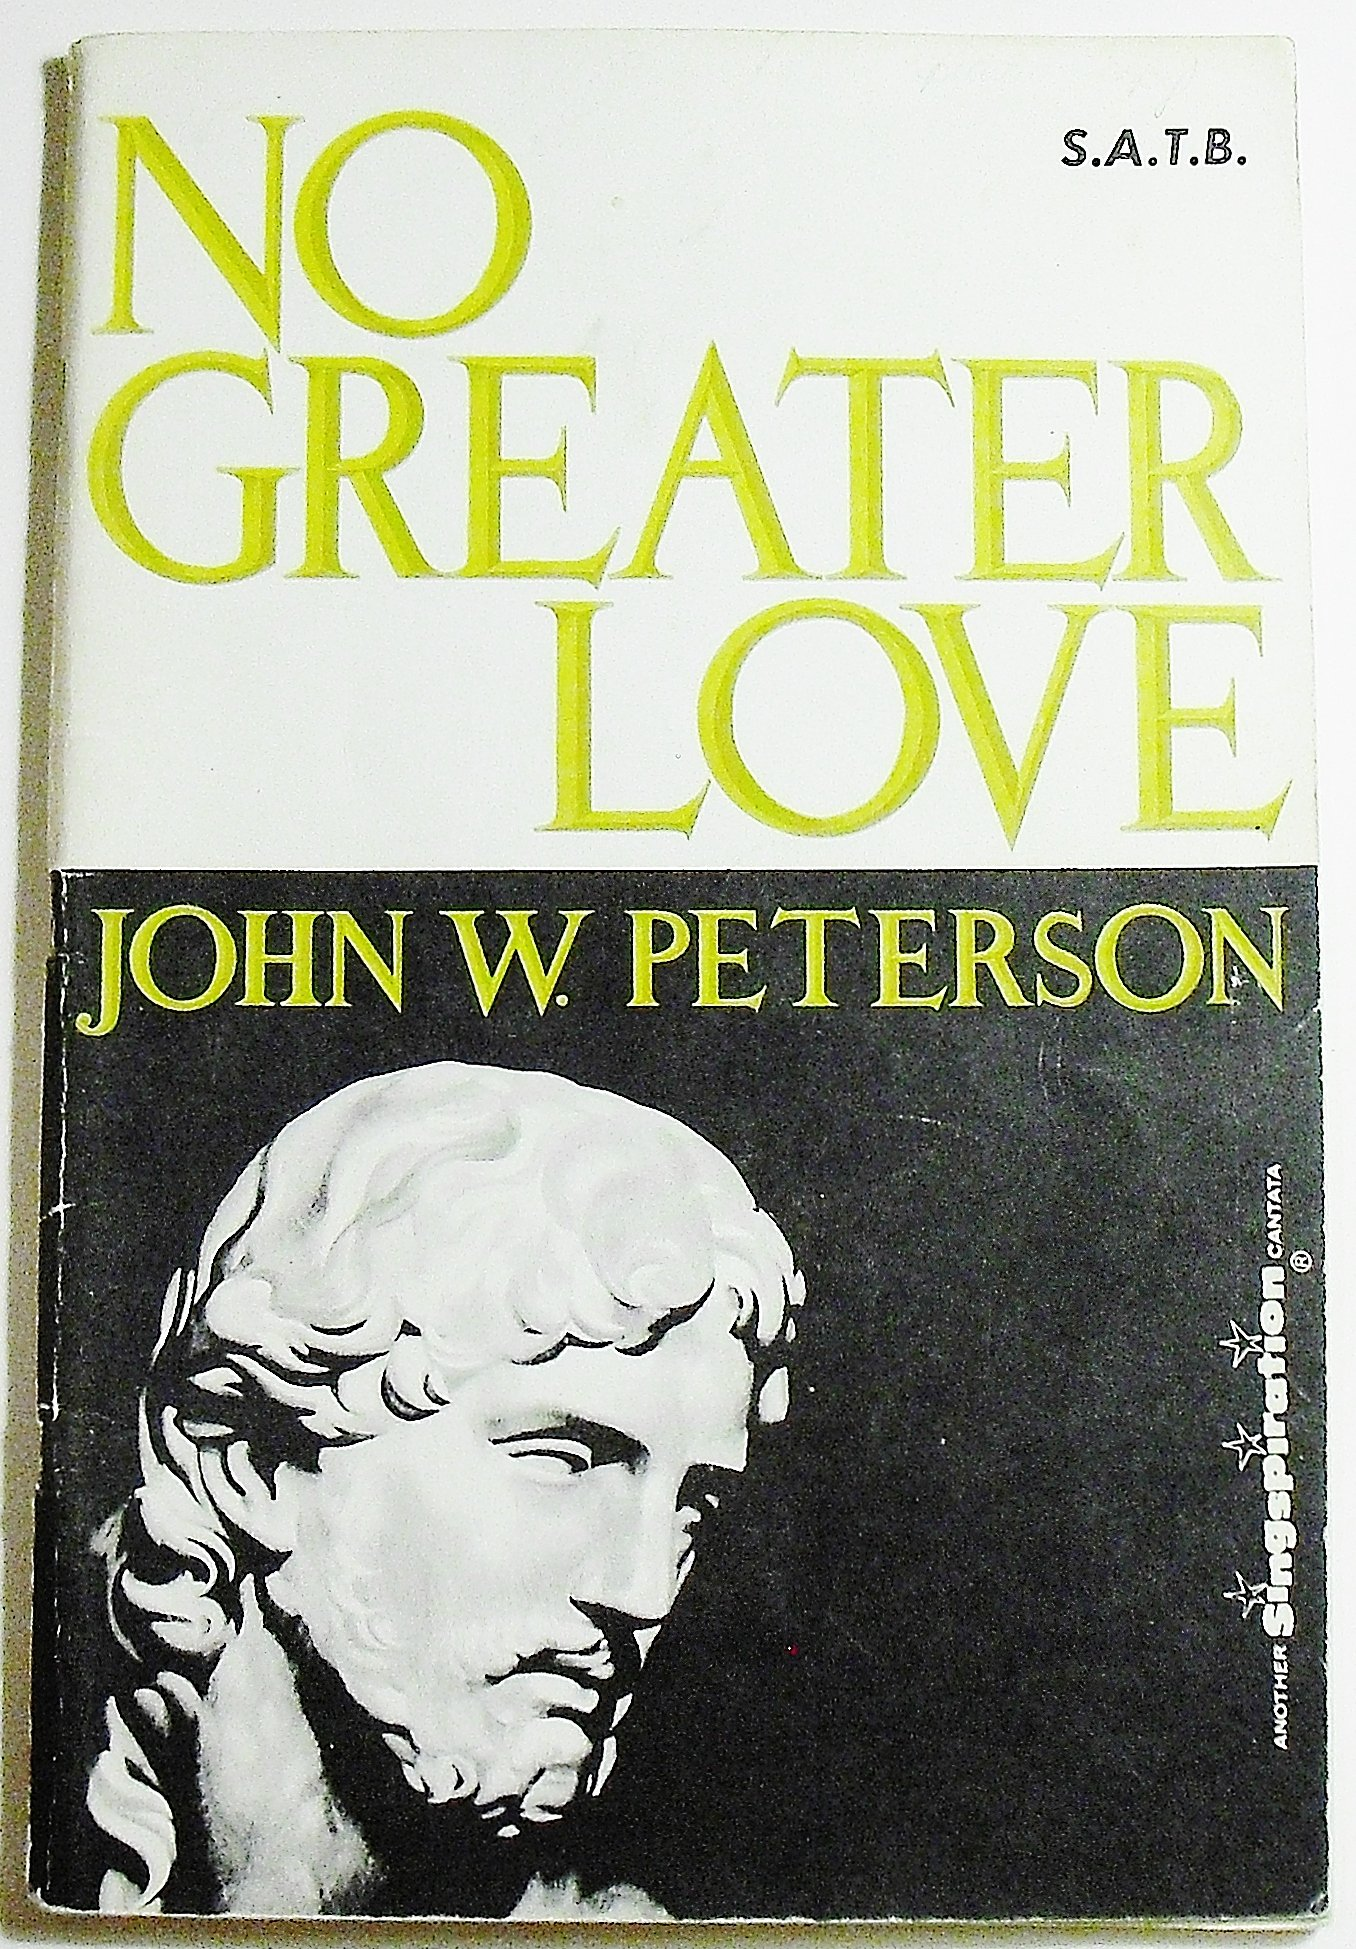 by John W Peterson Singspiration, 1958 No Greater Love S.A.T.B.